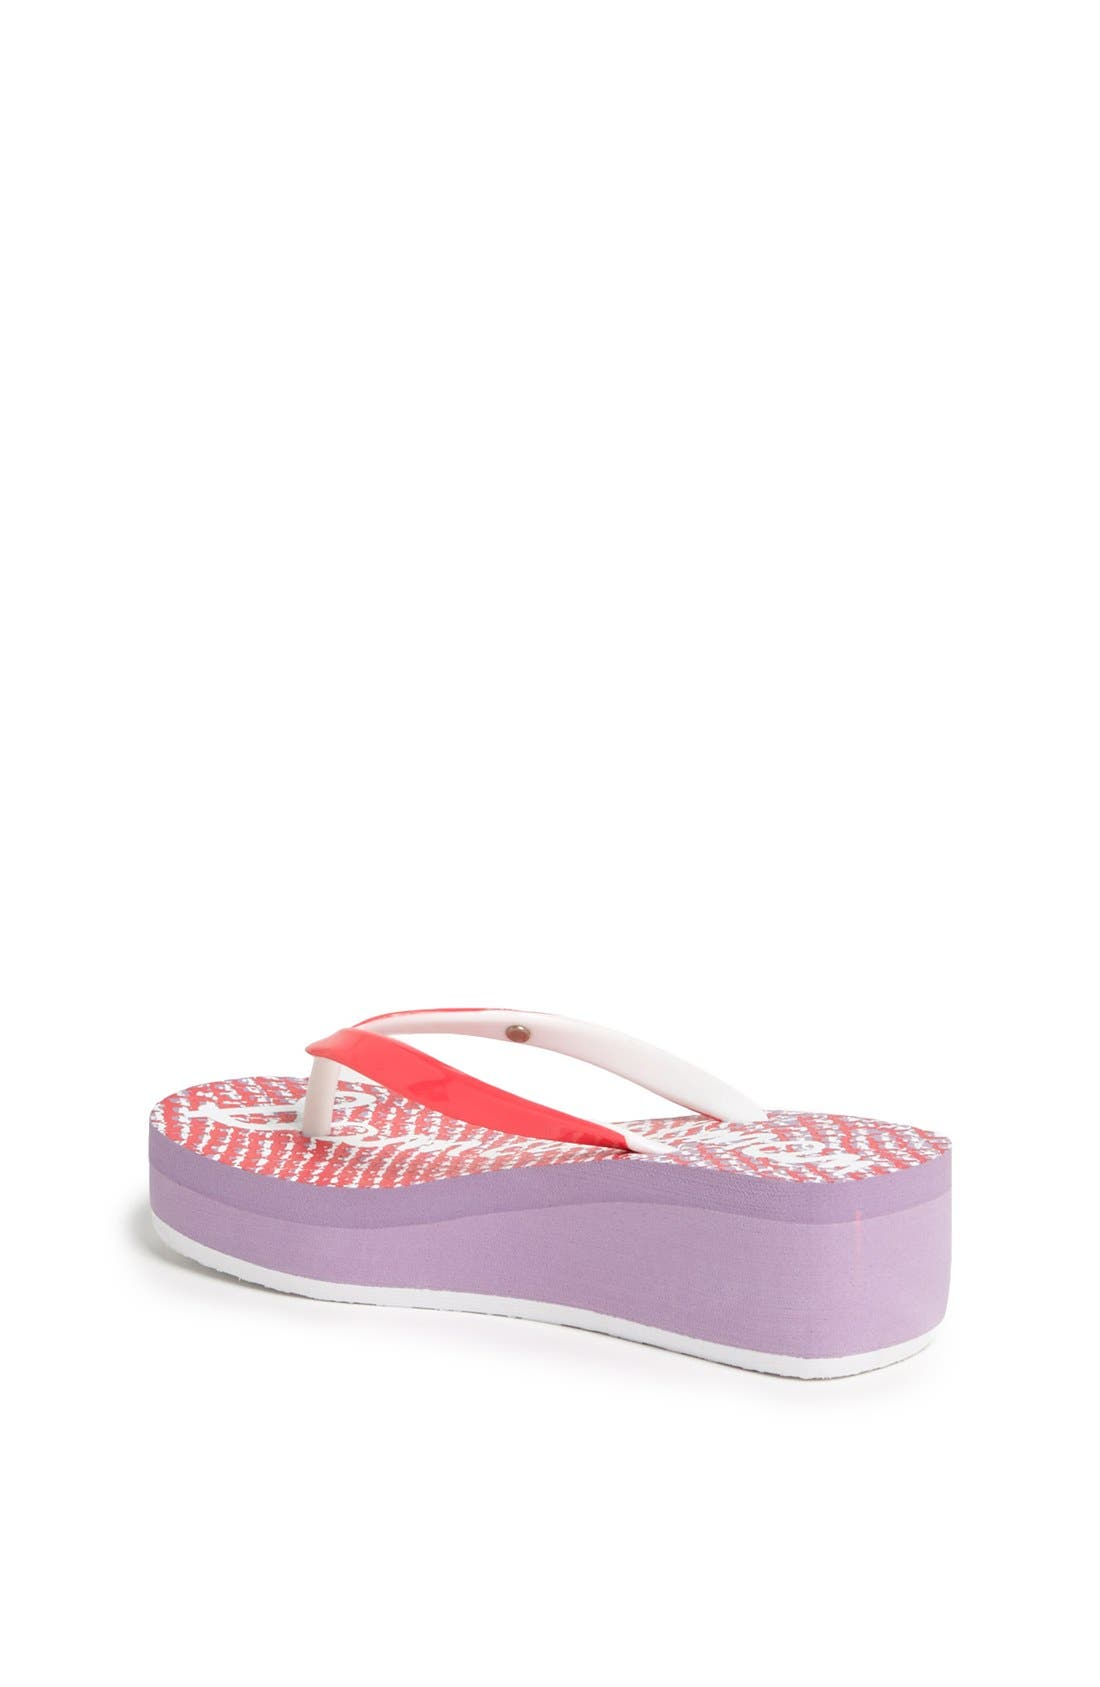 Alternate Image 2  - Sam Edelman 'Maribelle' Flip Flop (Toddler, Little Kid & Big Kid)